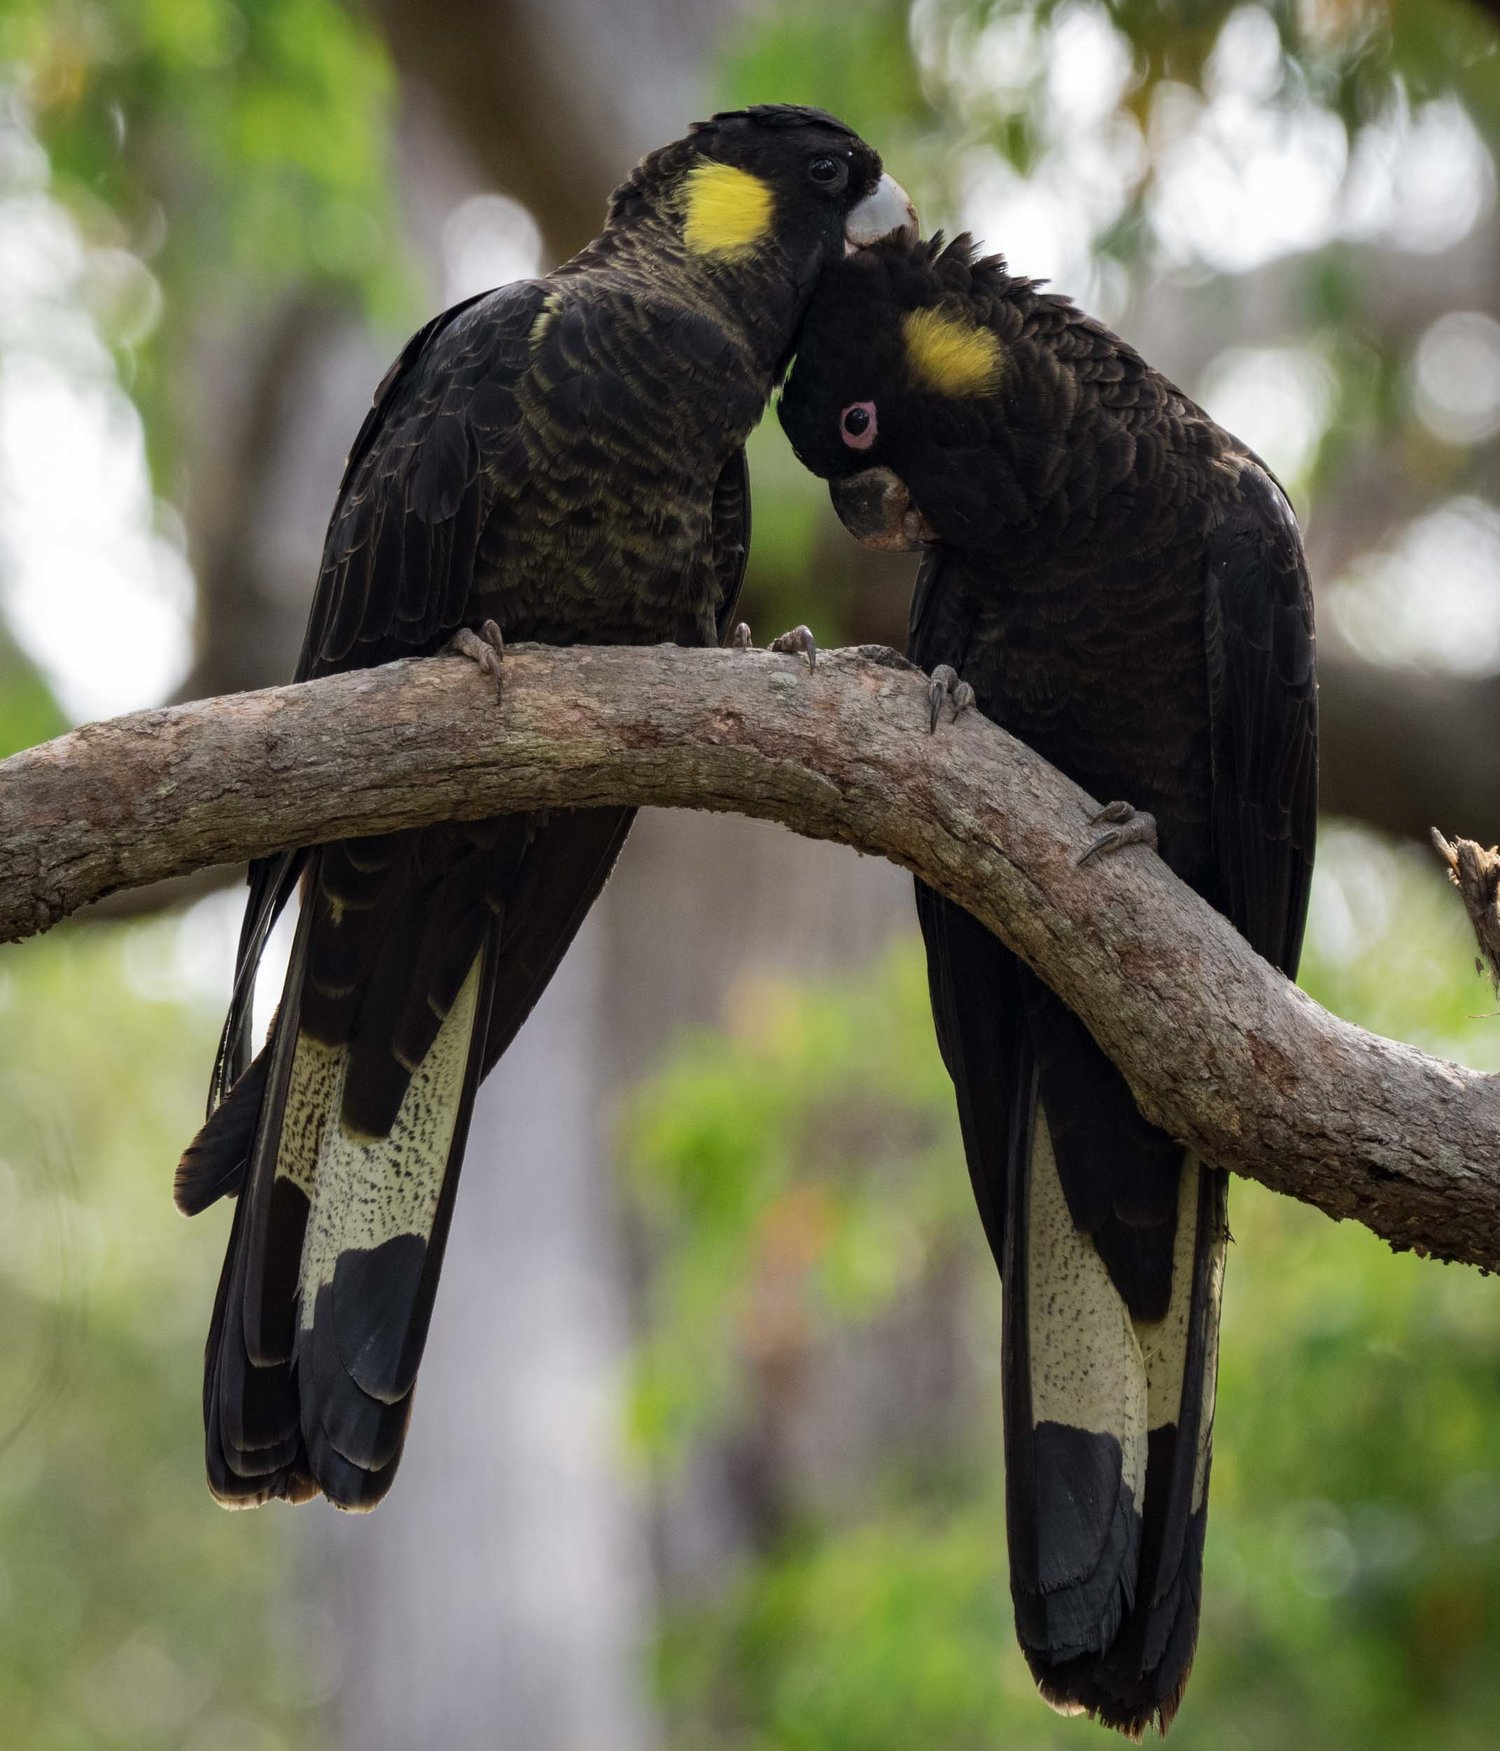 Yellow-tailed Black Cockatoo, Calyptorhynchyus funereus